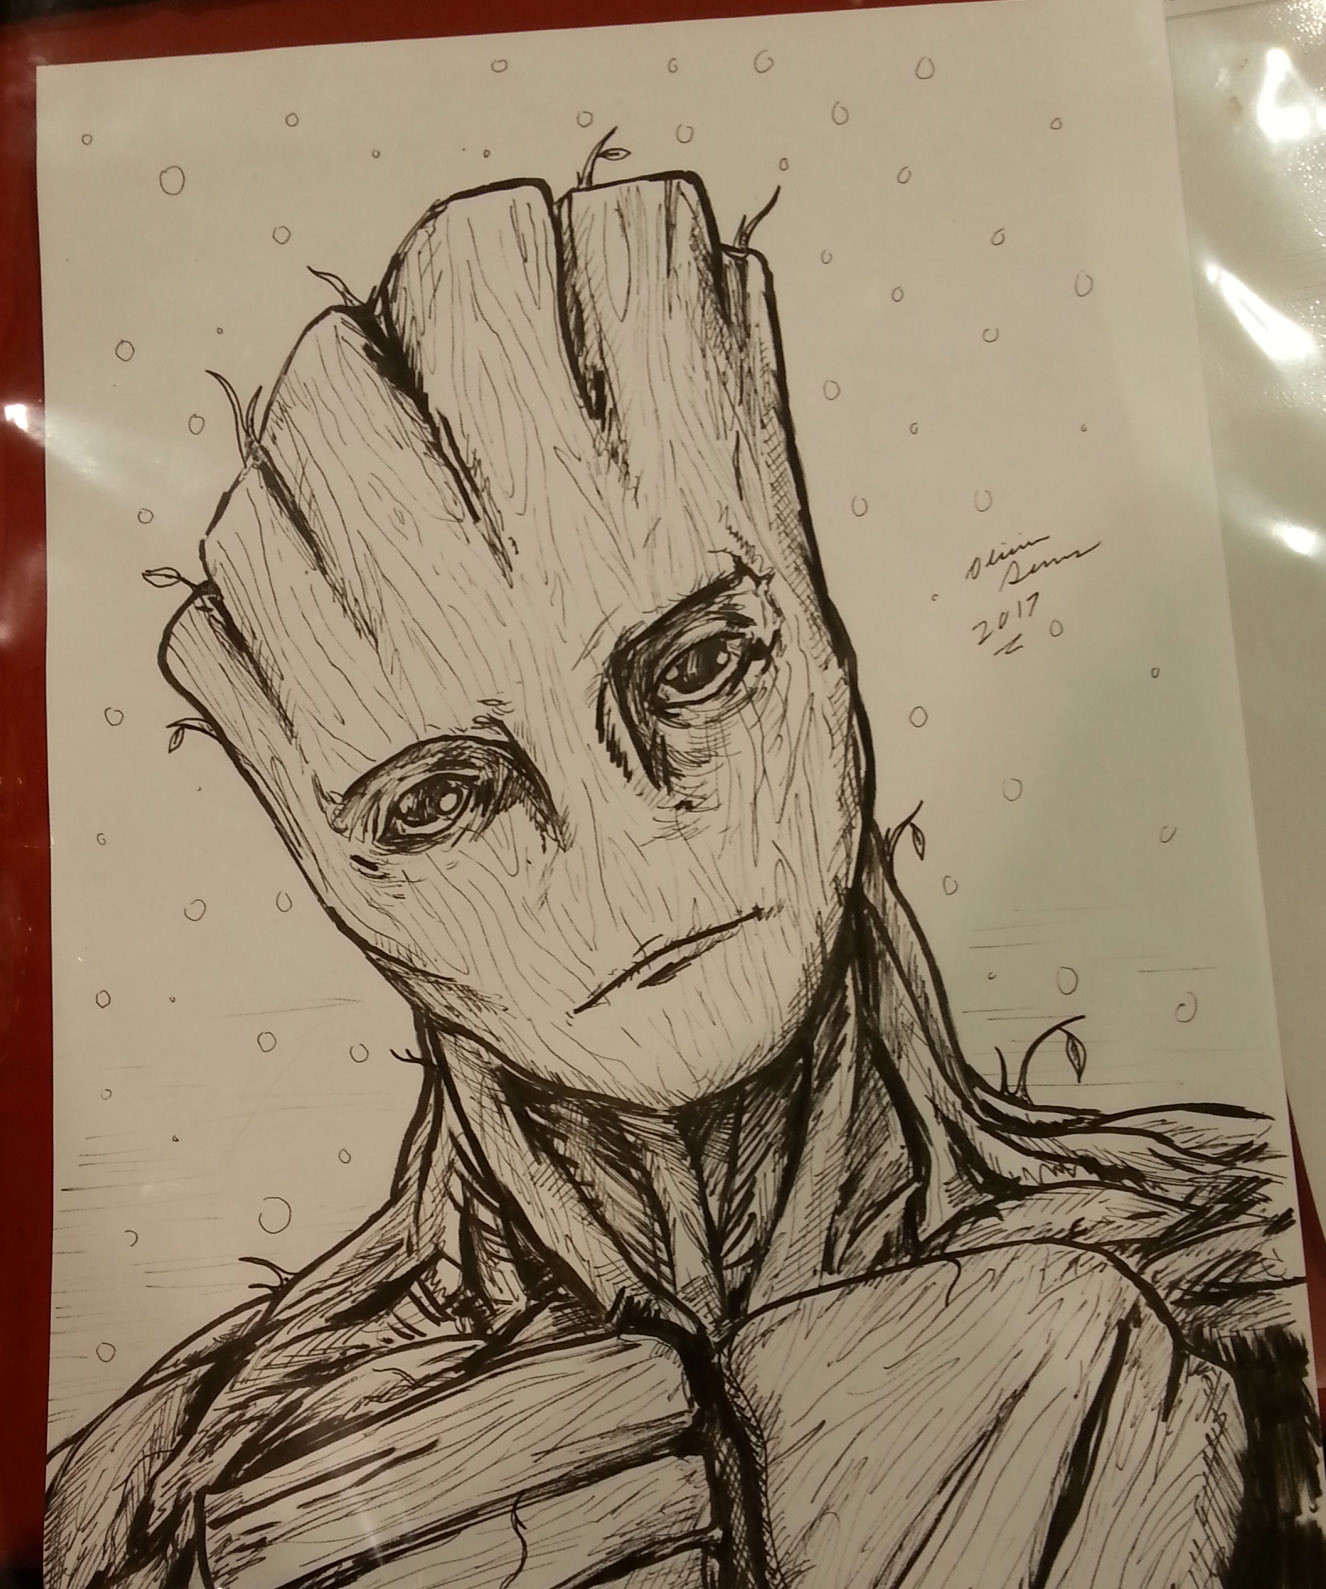 ArtStation - Fan Expo 2017 Sketches, Olivier Demers